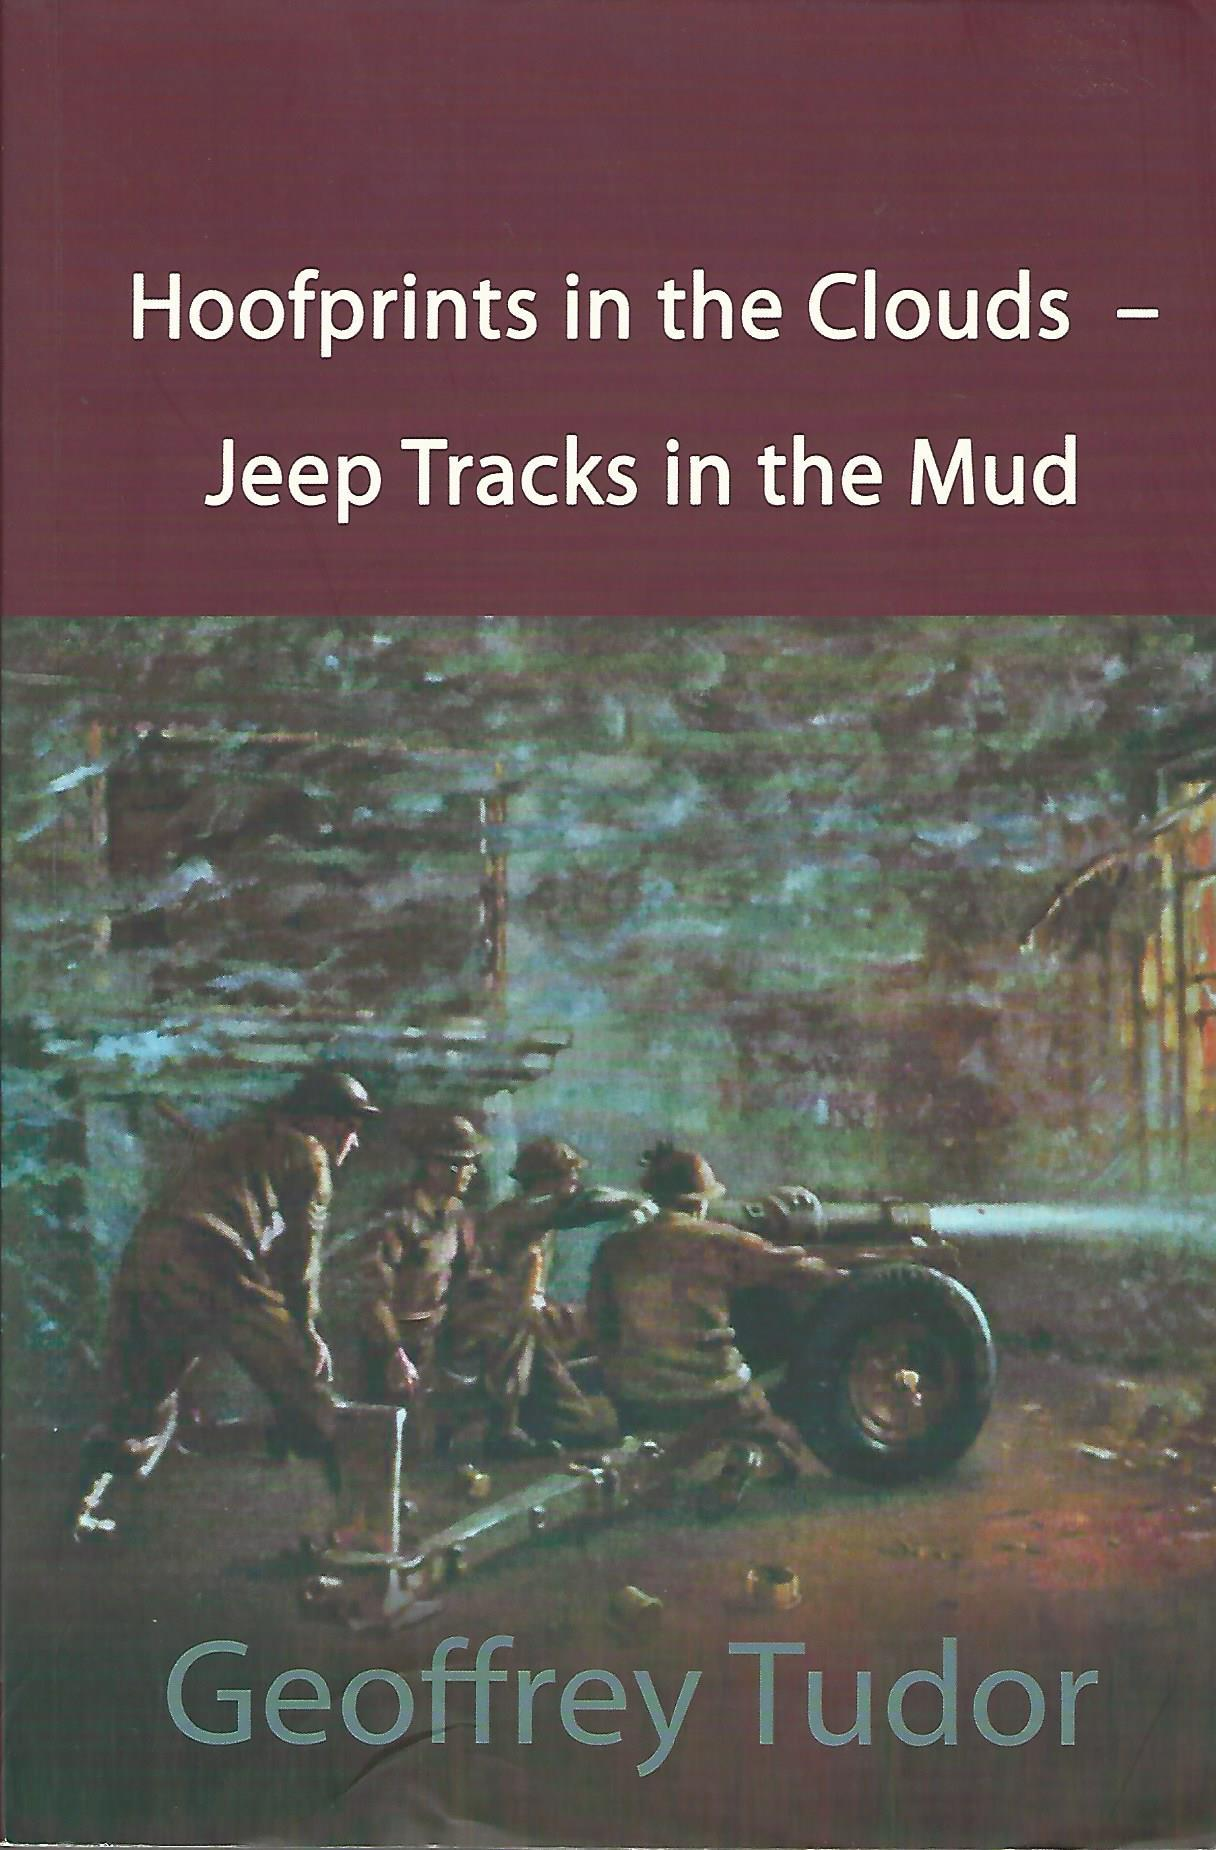 Image for Hoofprints in the Clouds - Jeep Tracks in the Mud.